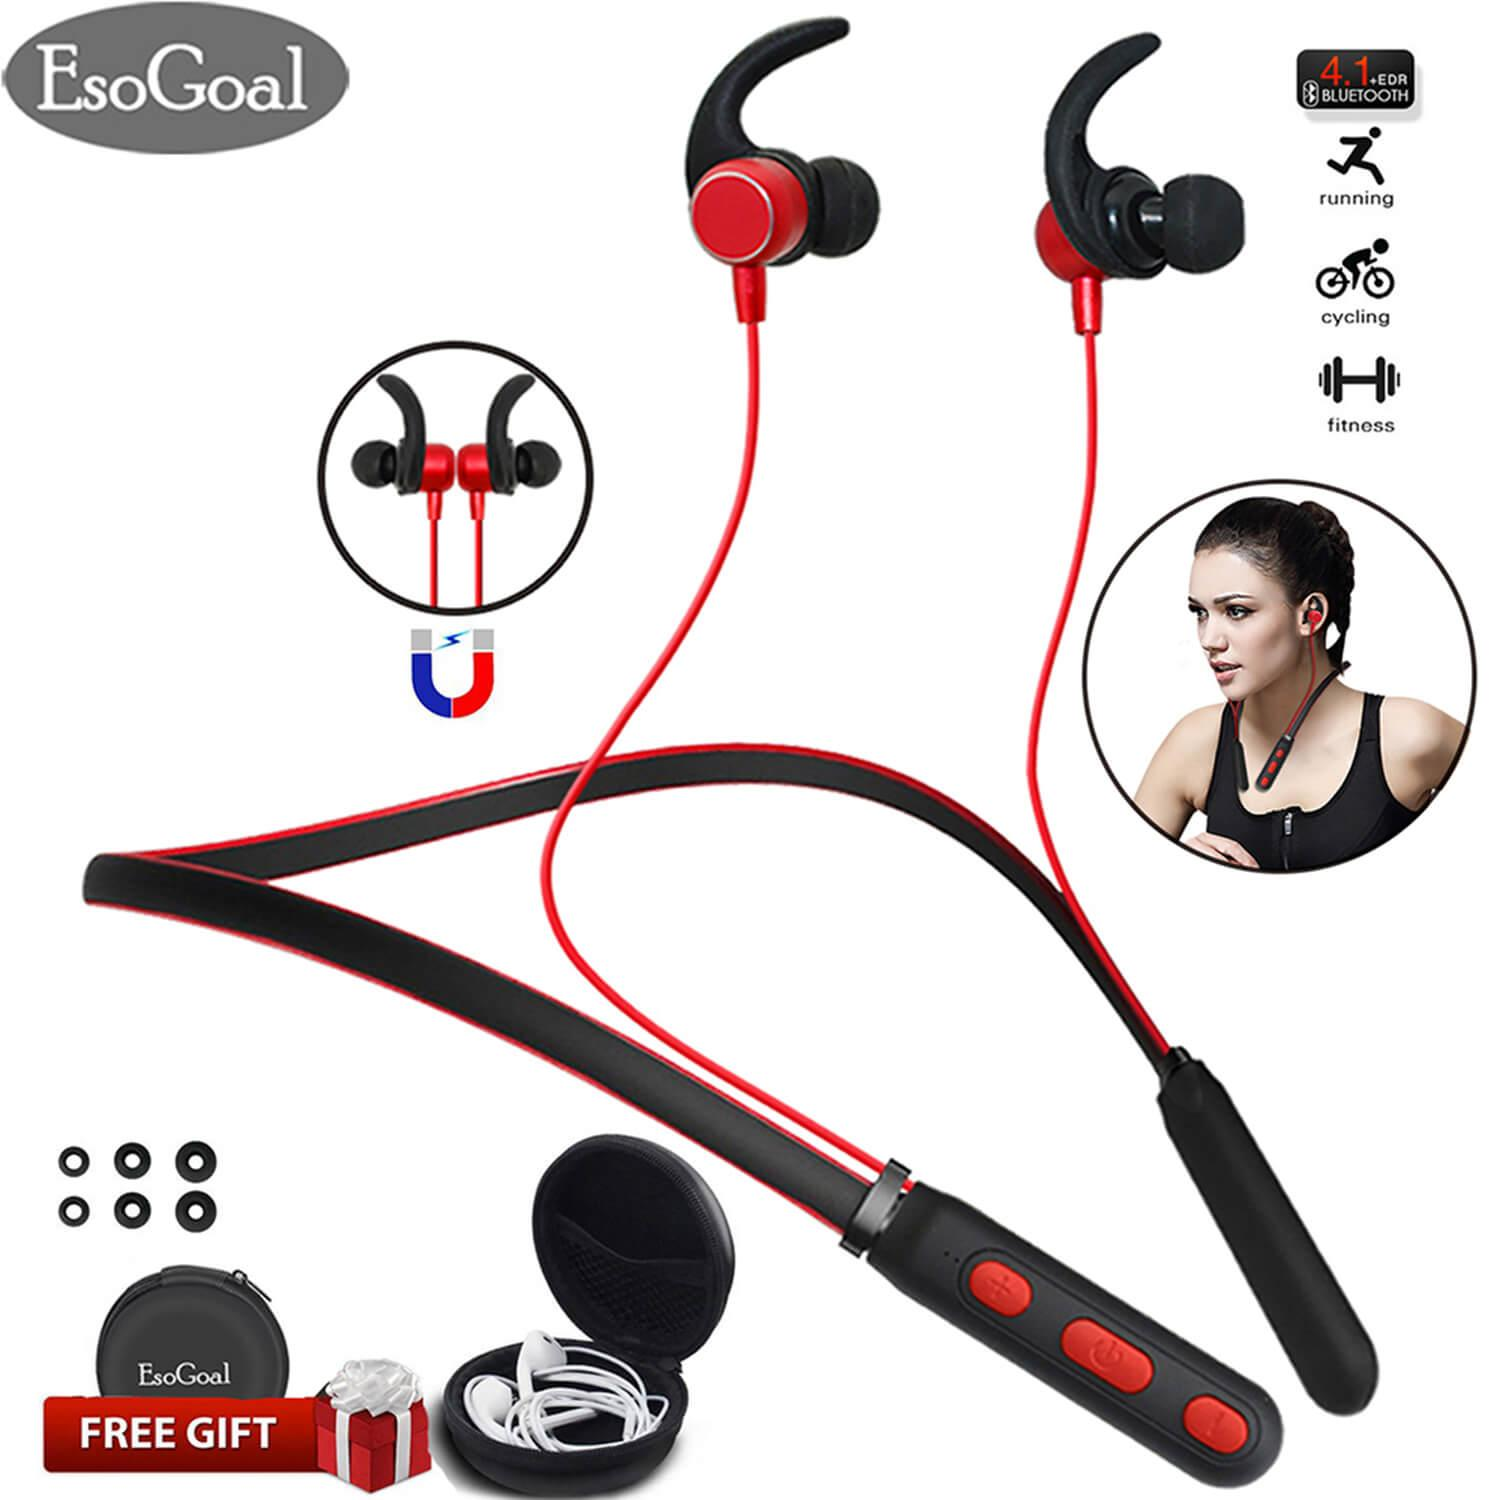 Buy Esogoal In Ear Bluetooth Headphones Wireless Neckband Headset V4 1 Bluetooth Magnetic Stereo Earbuds In Ear With Mic And Carry Case For Sports Gym And Travel Esogoal Original